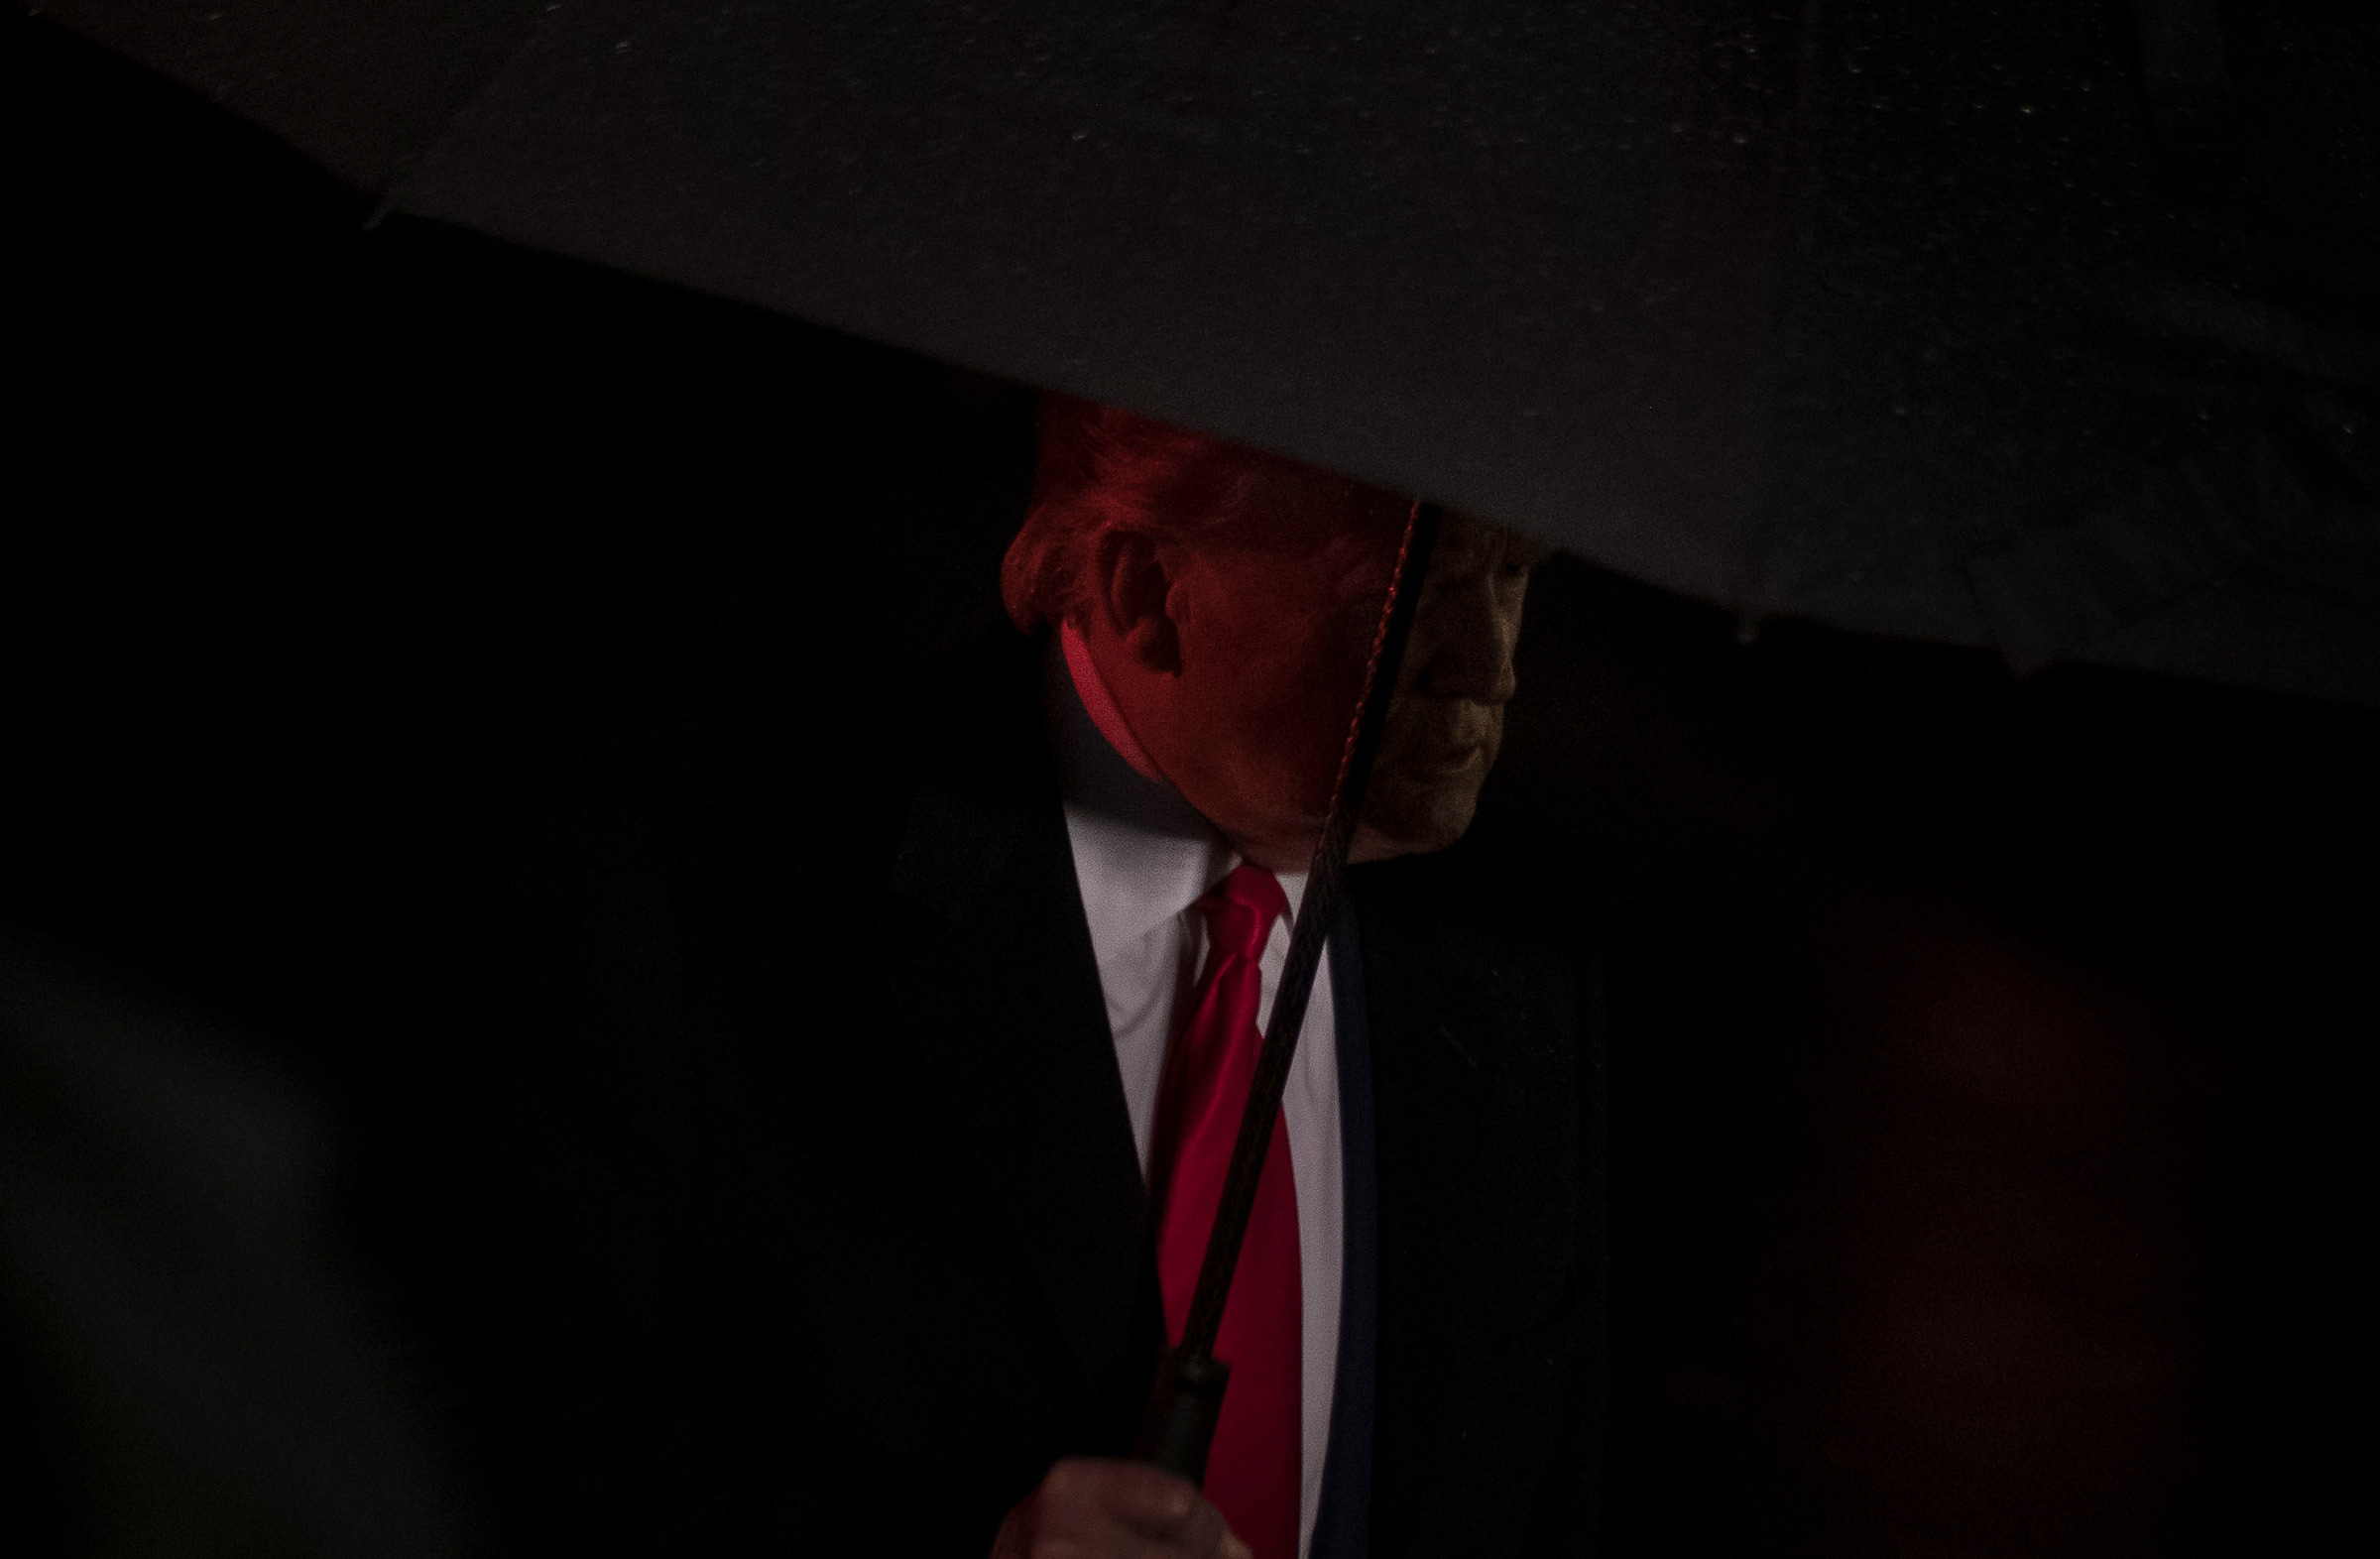 President Donald Trump speaks with reporters before boarding Marine One at the White House in Washington, D.C., Dec. 10, 2019.